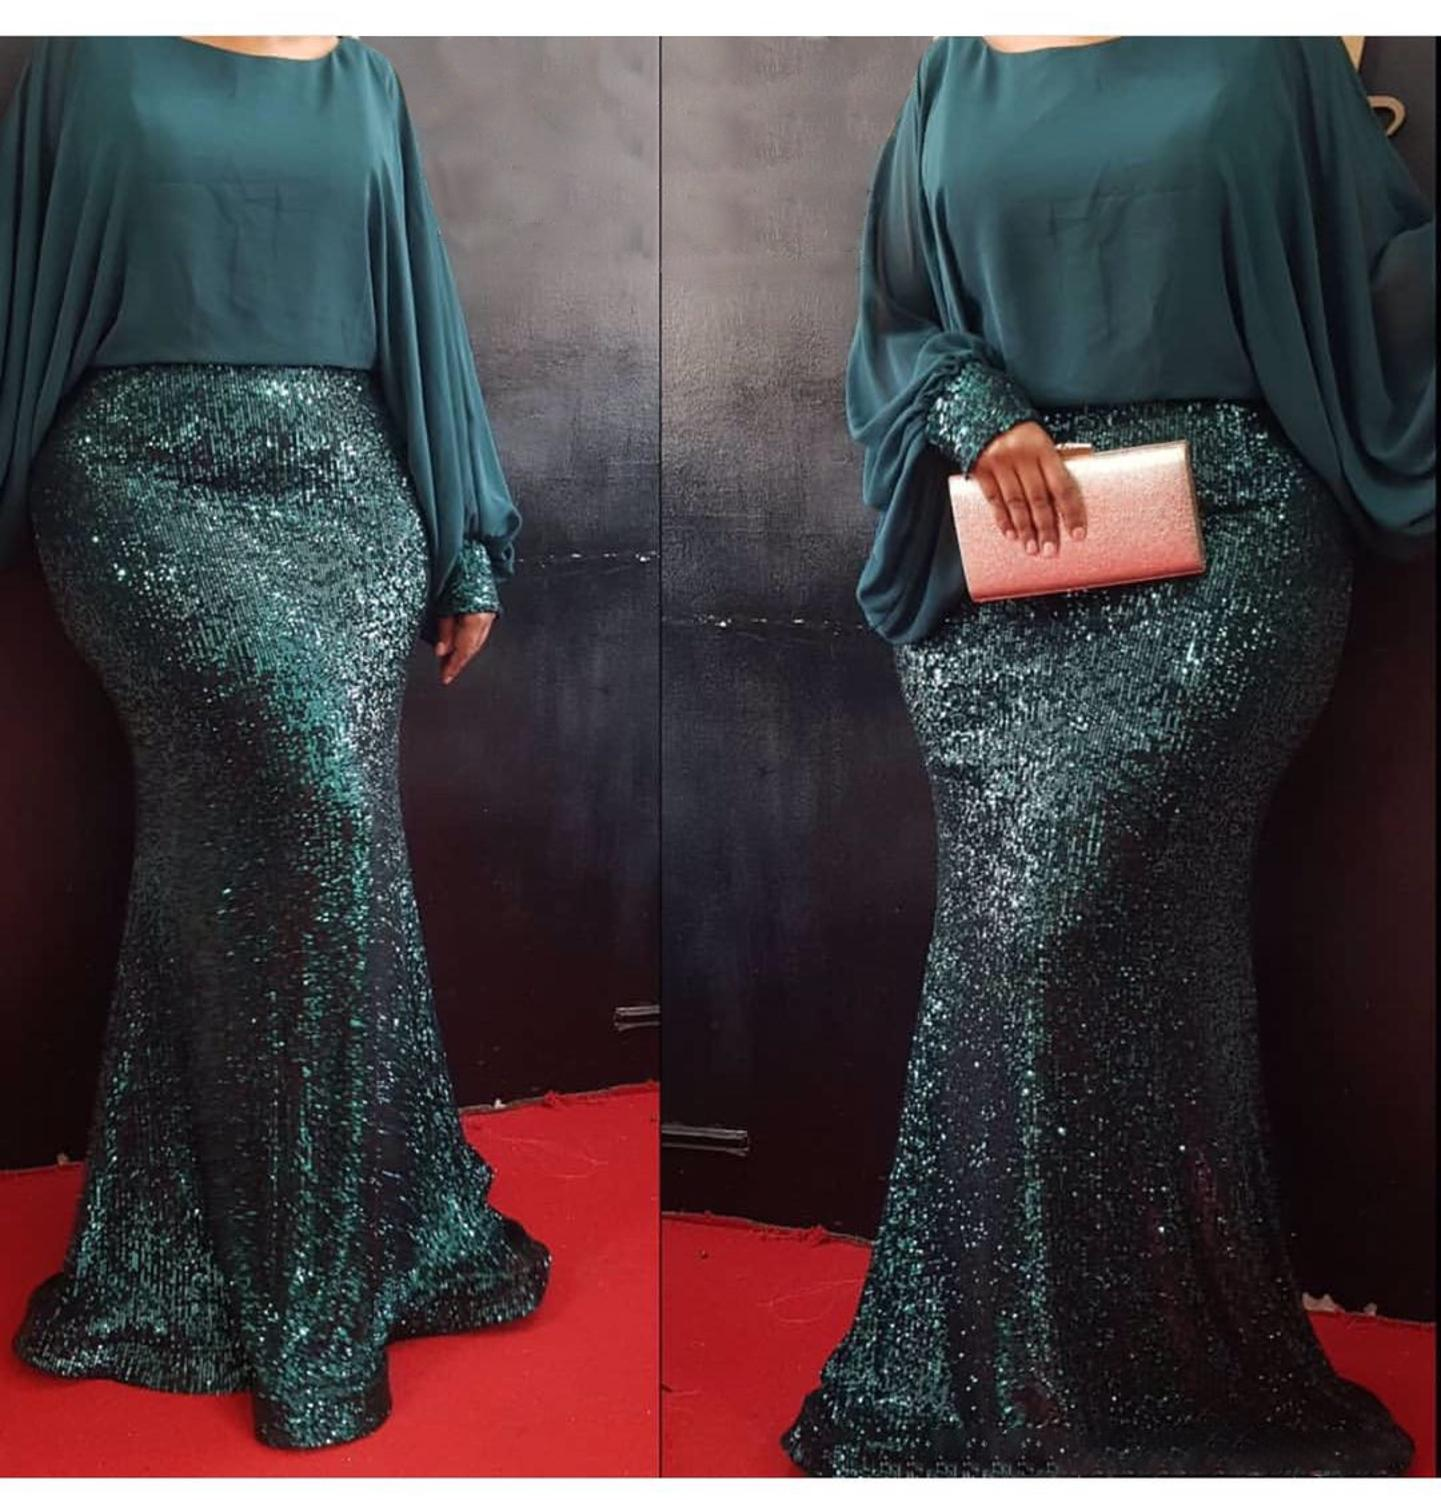 African Dresses For Women 2020 Elegant Fashion Chiffon Sequins Wedding Party Dresses Dashiki Round Neck Party Lady Dresses